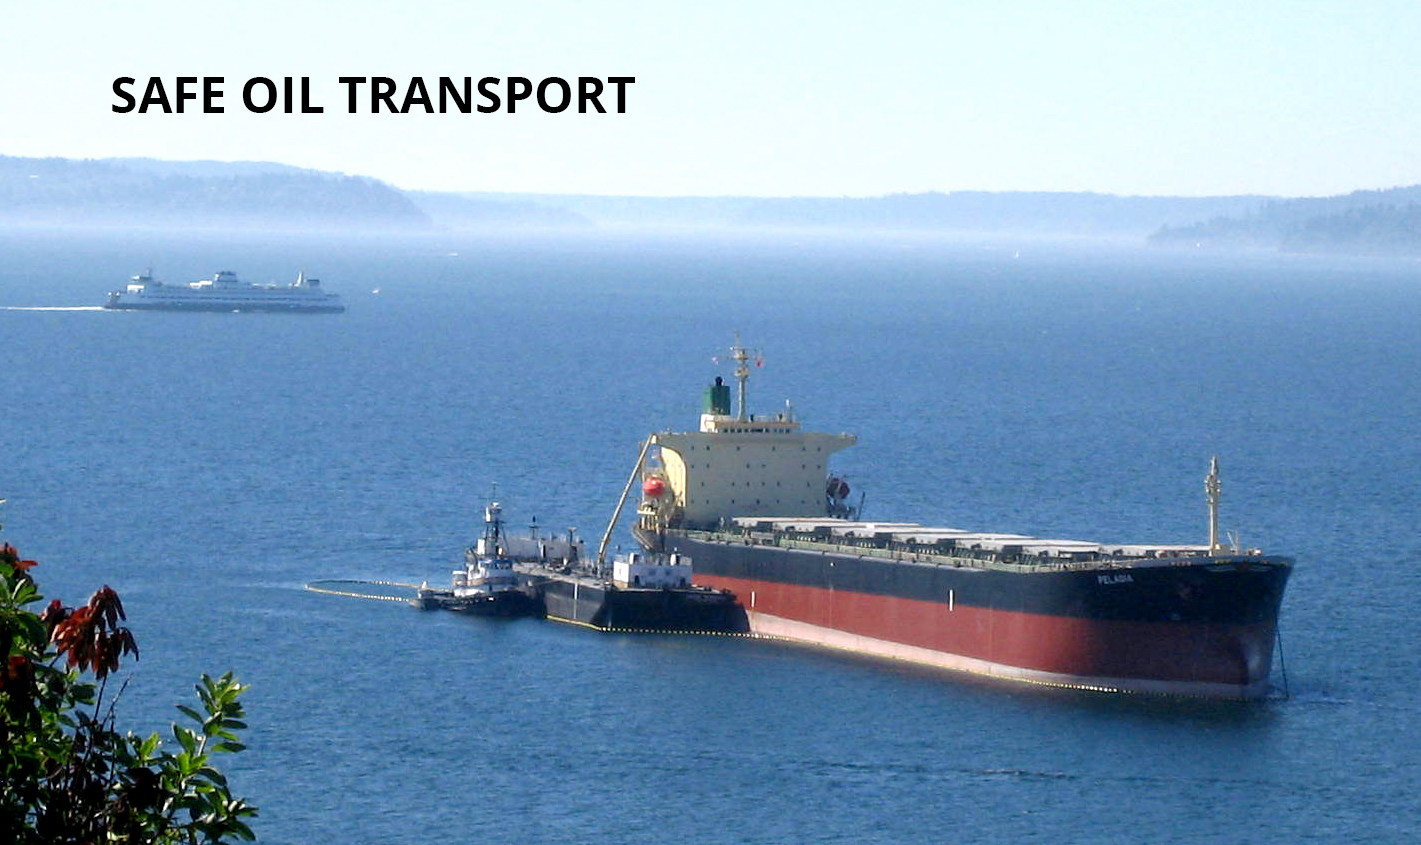 OIl tranport ship in the Straights of Juan de Fuca